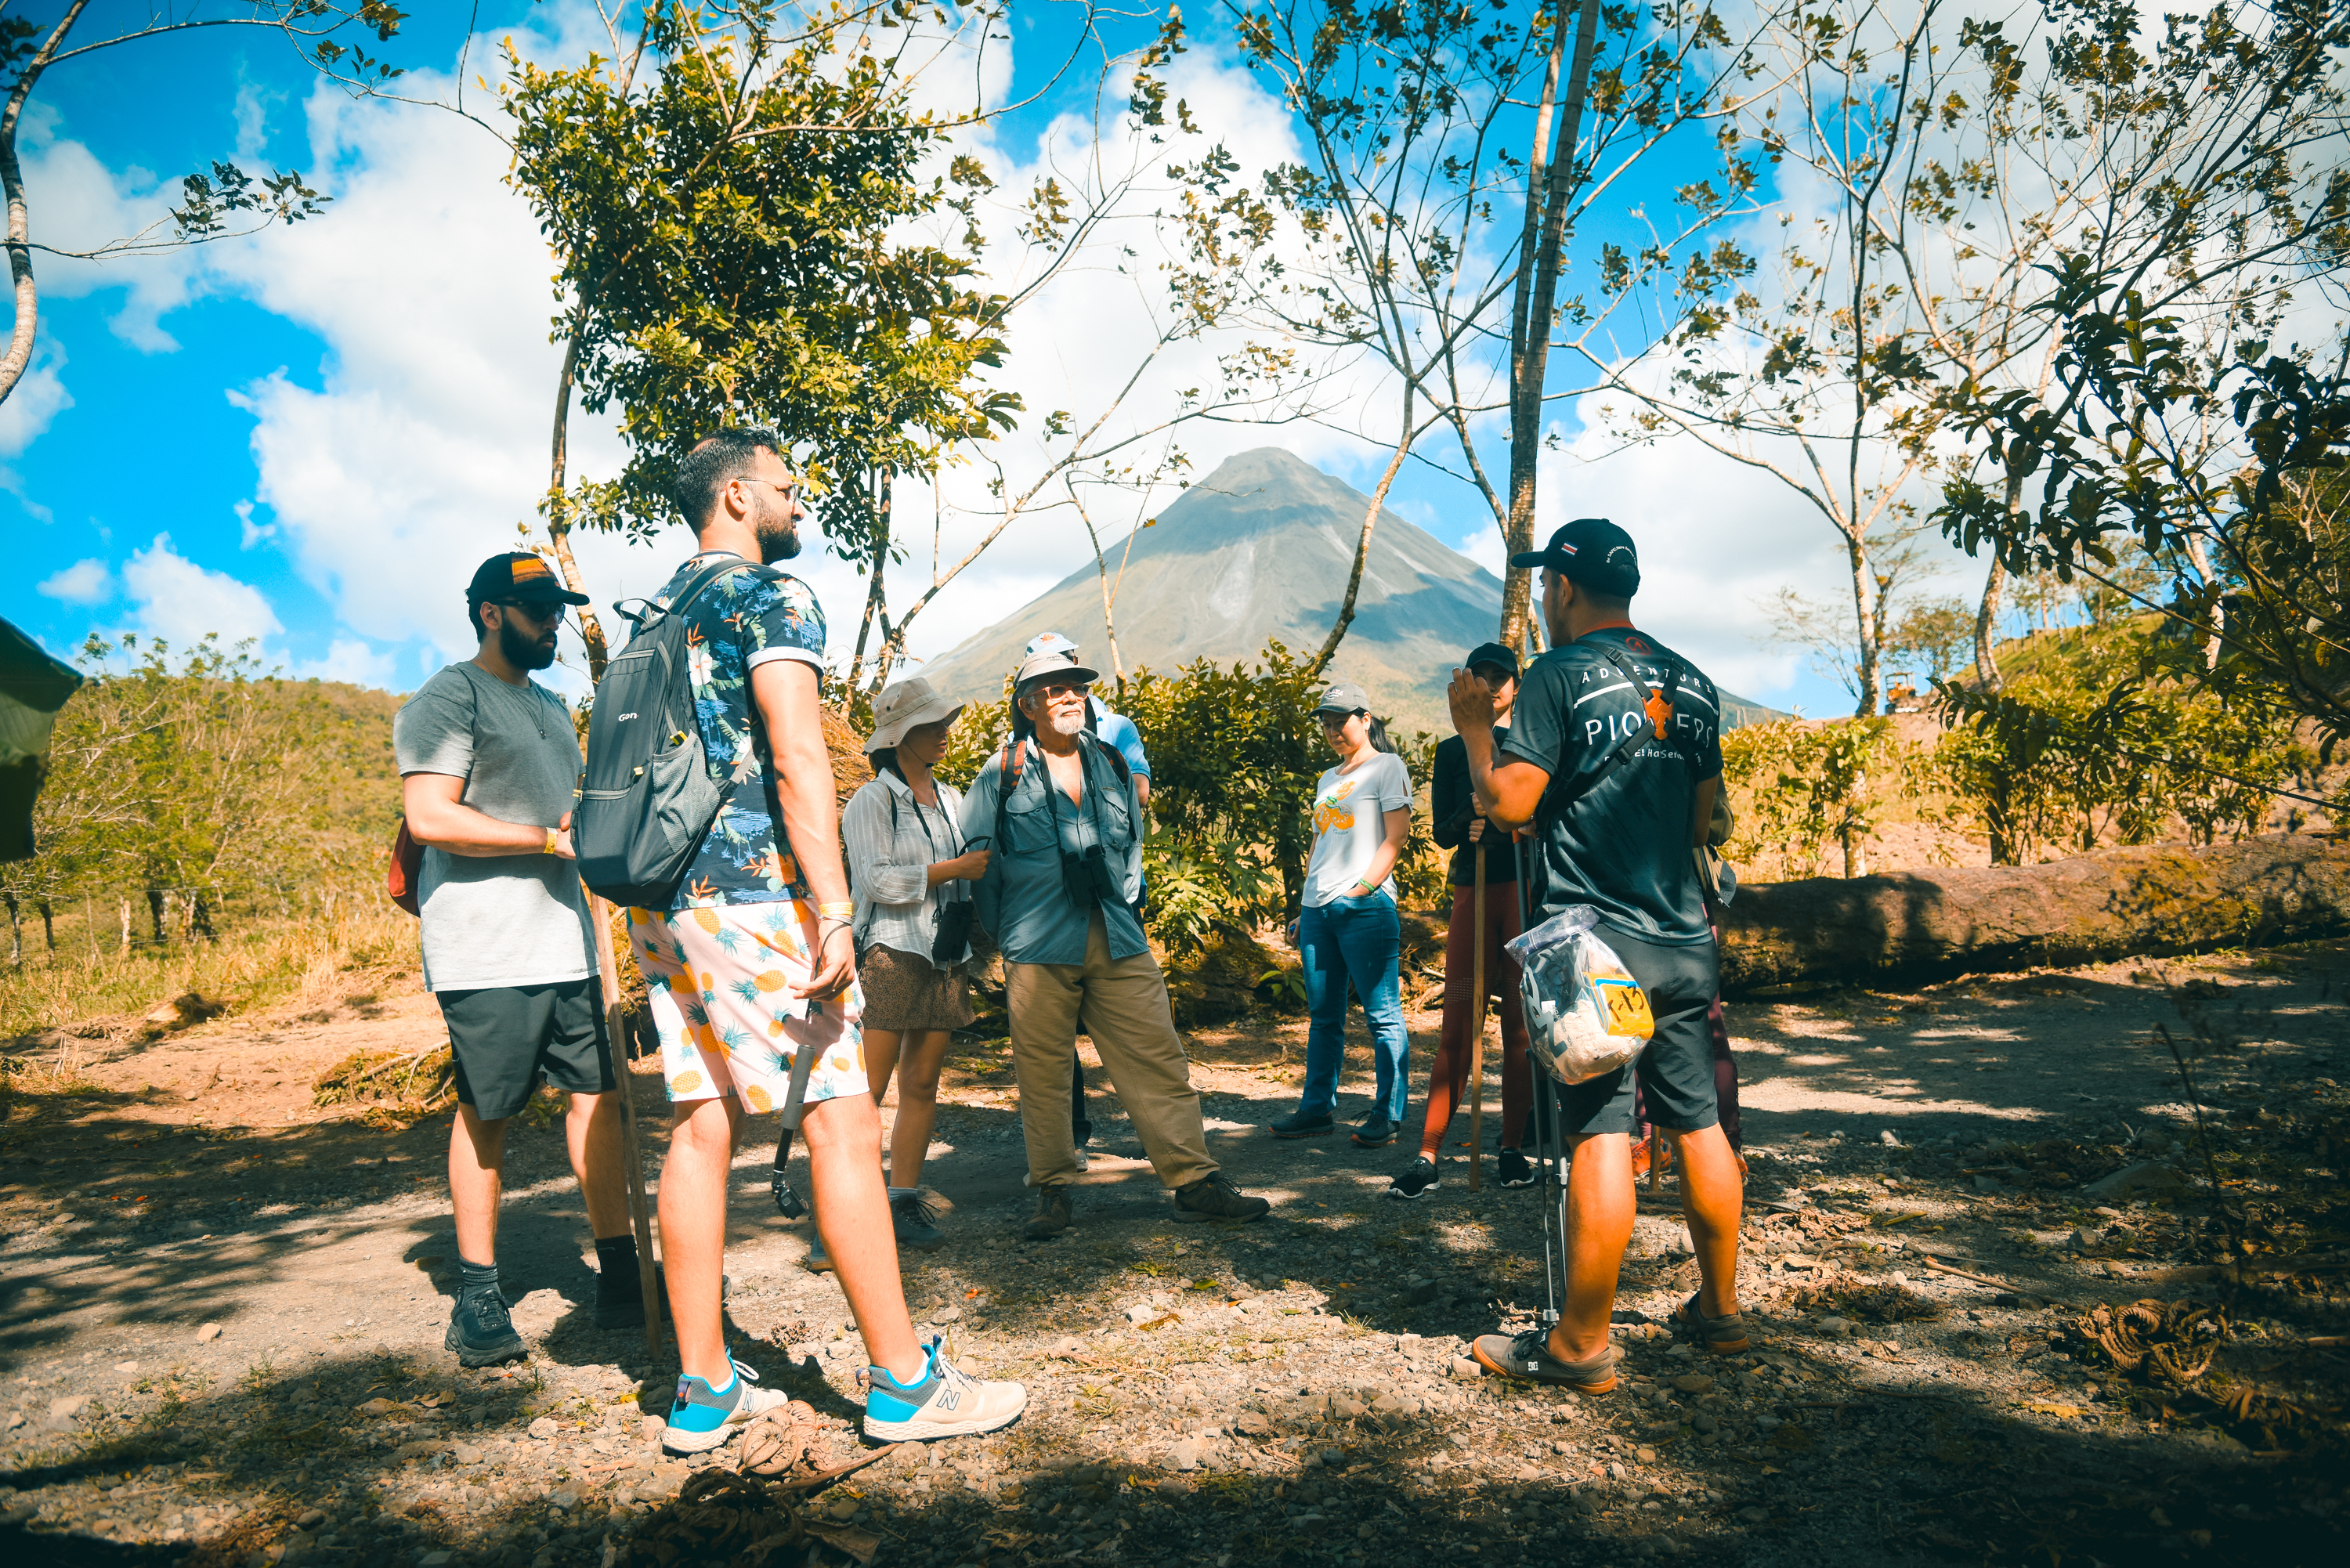 Experience the best sight and knowledge like never before, all with Desafio in La Fortuna, Costa Rica!